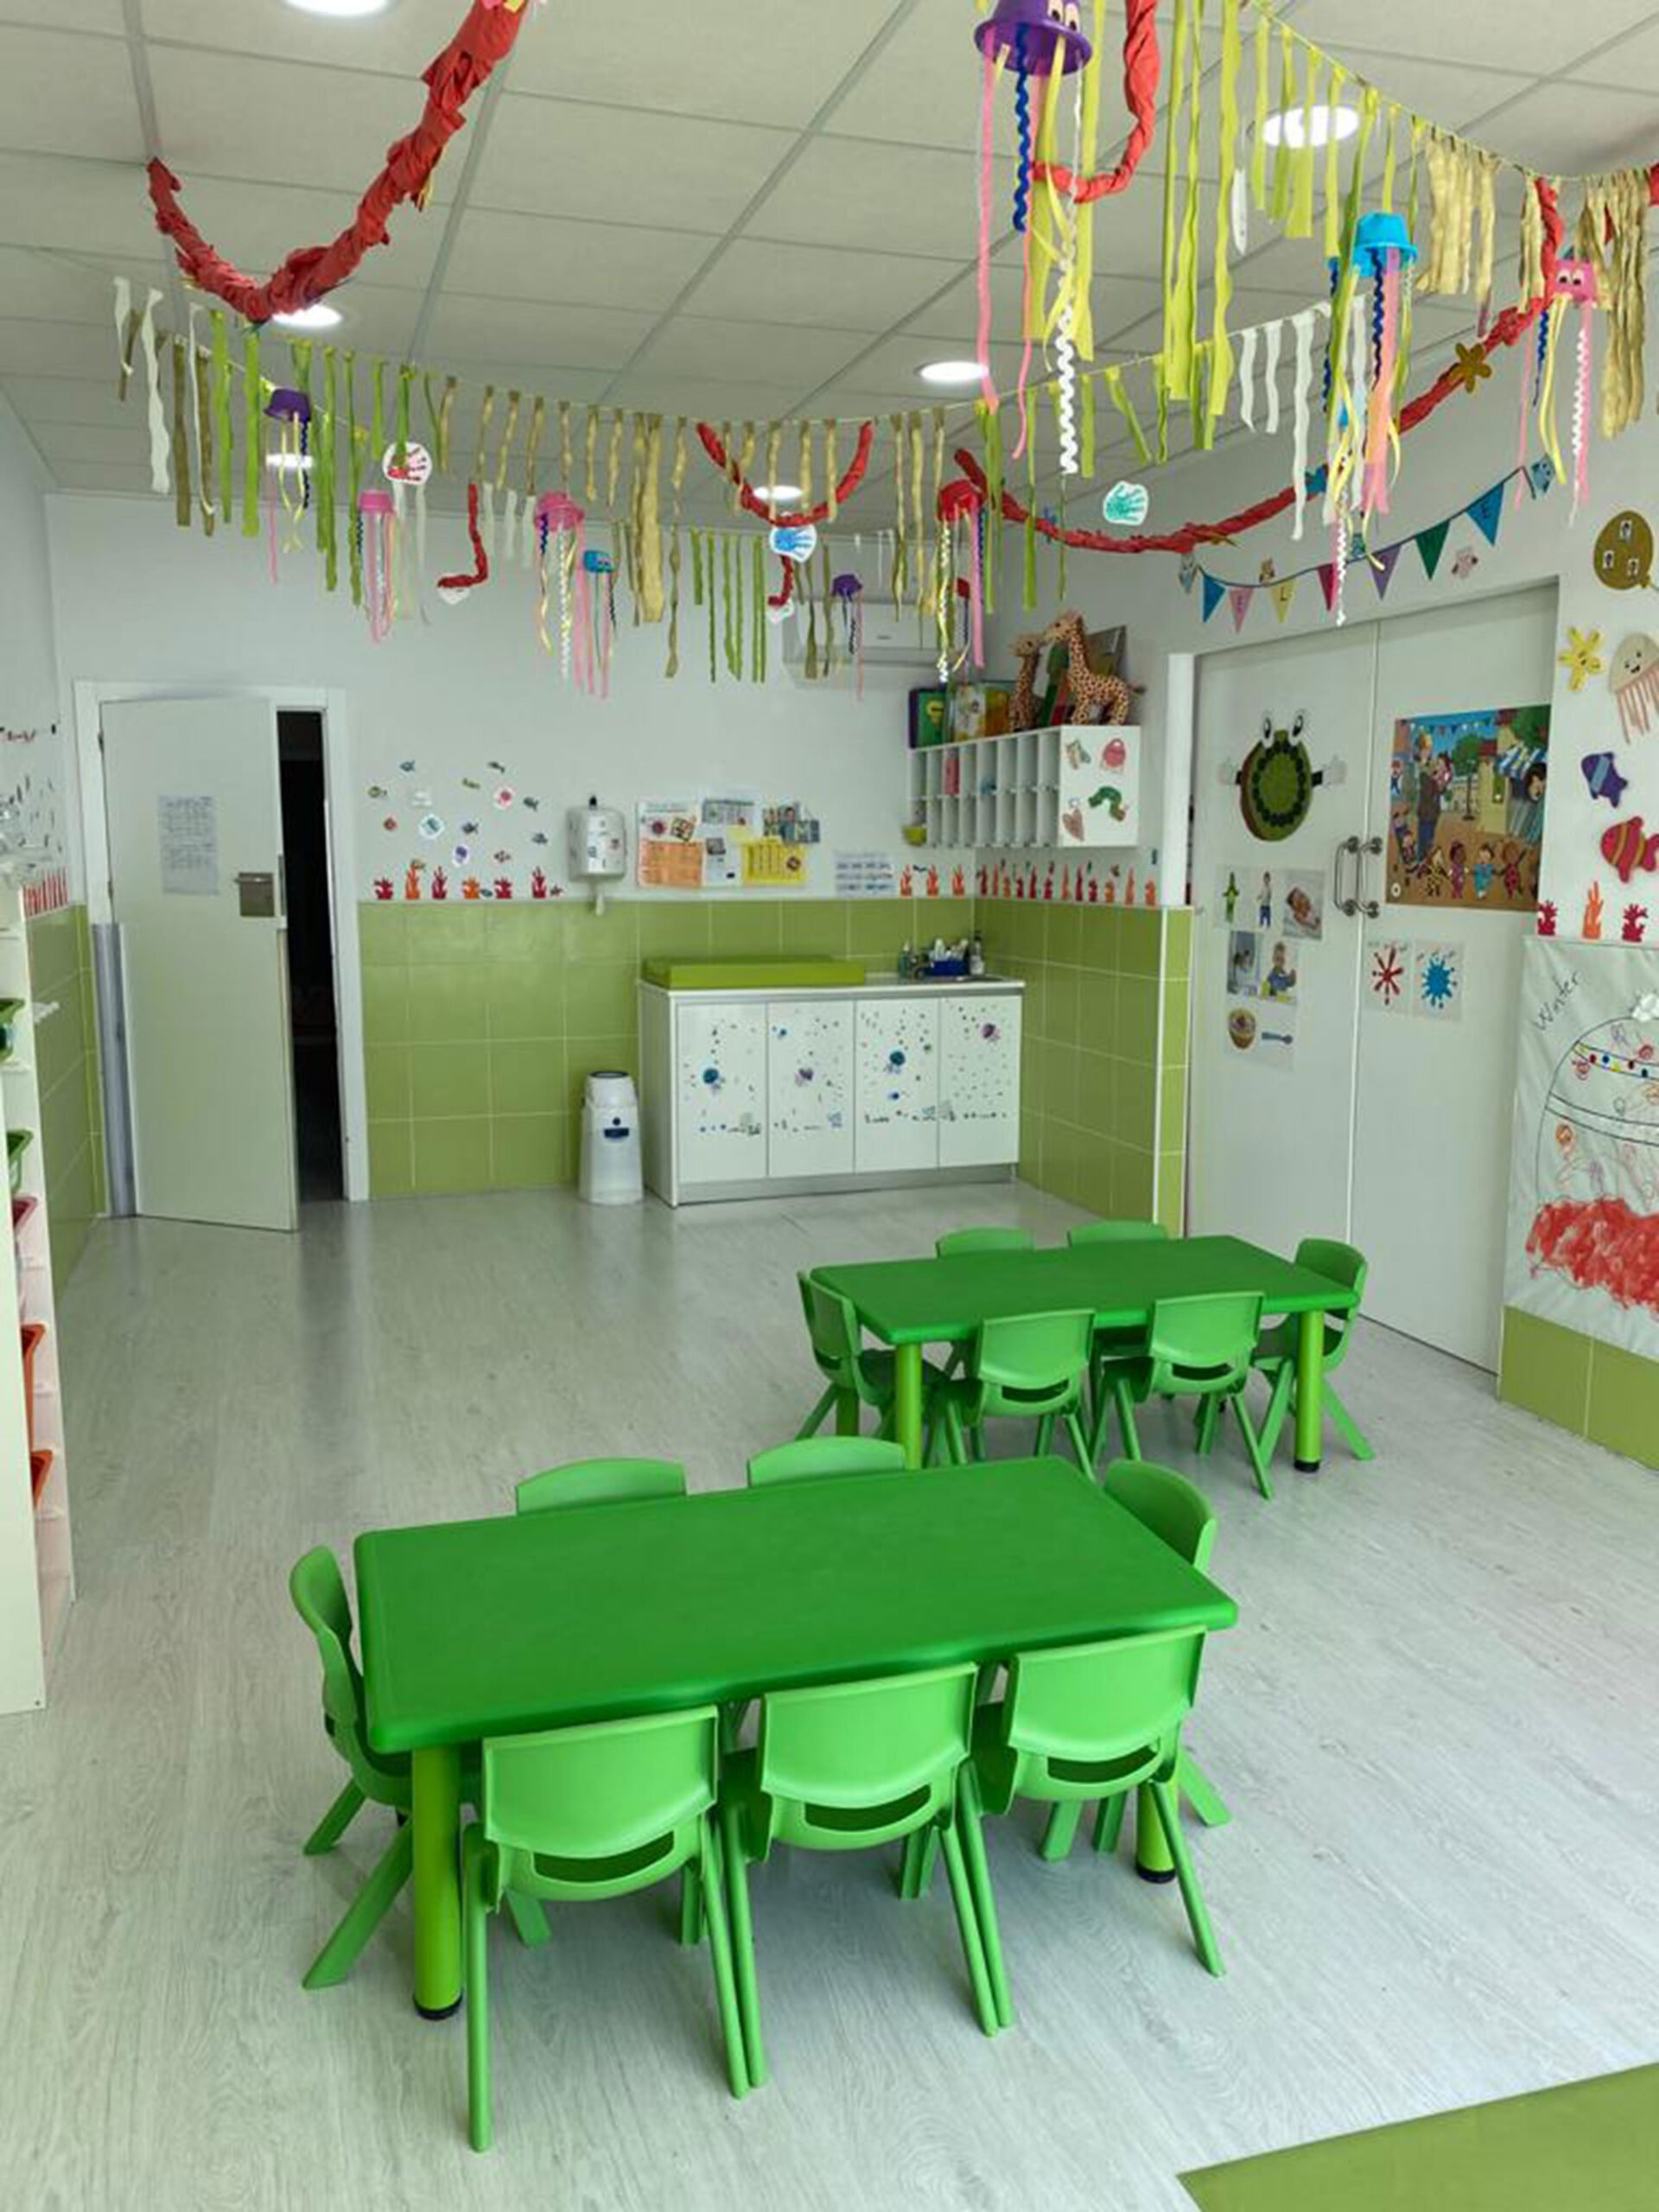 Green classroom at CEI Bombonets